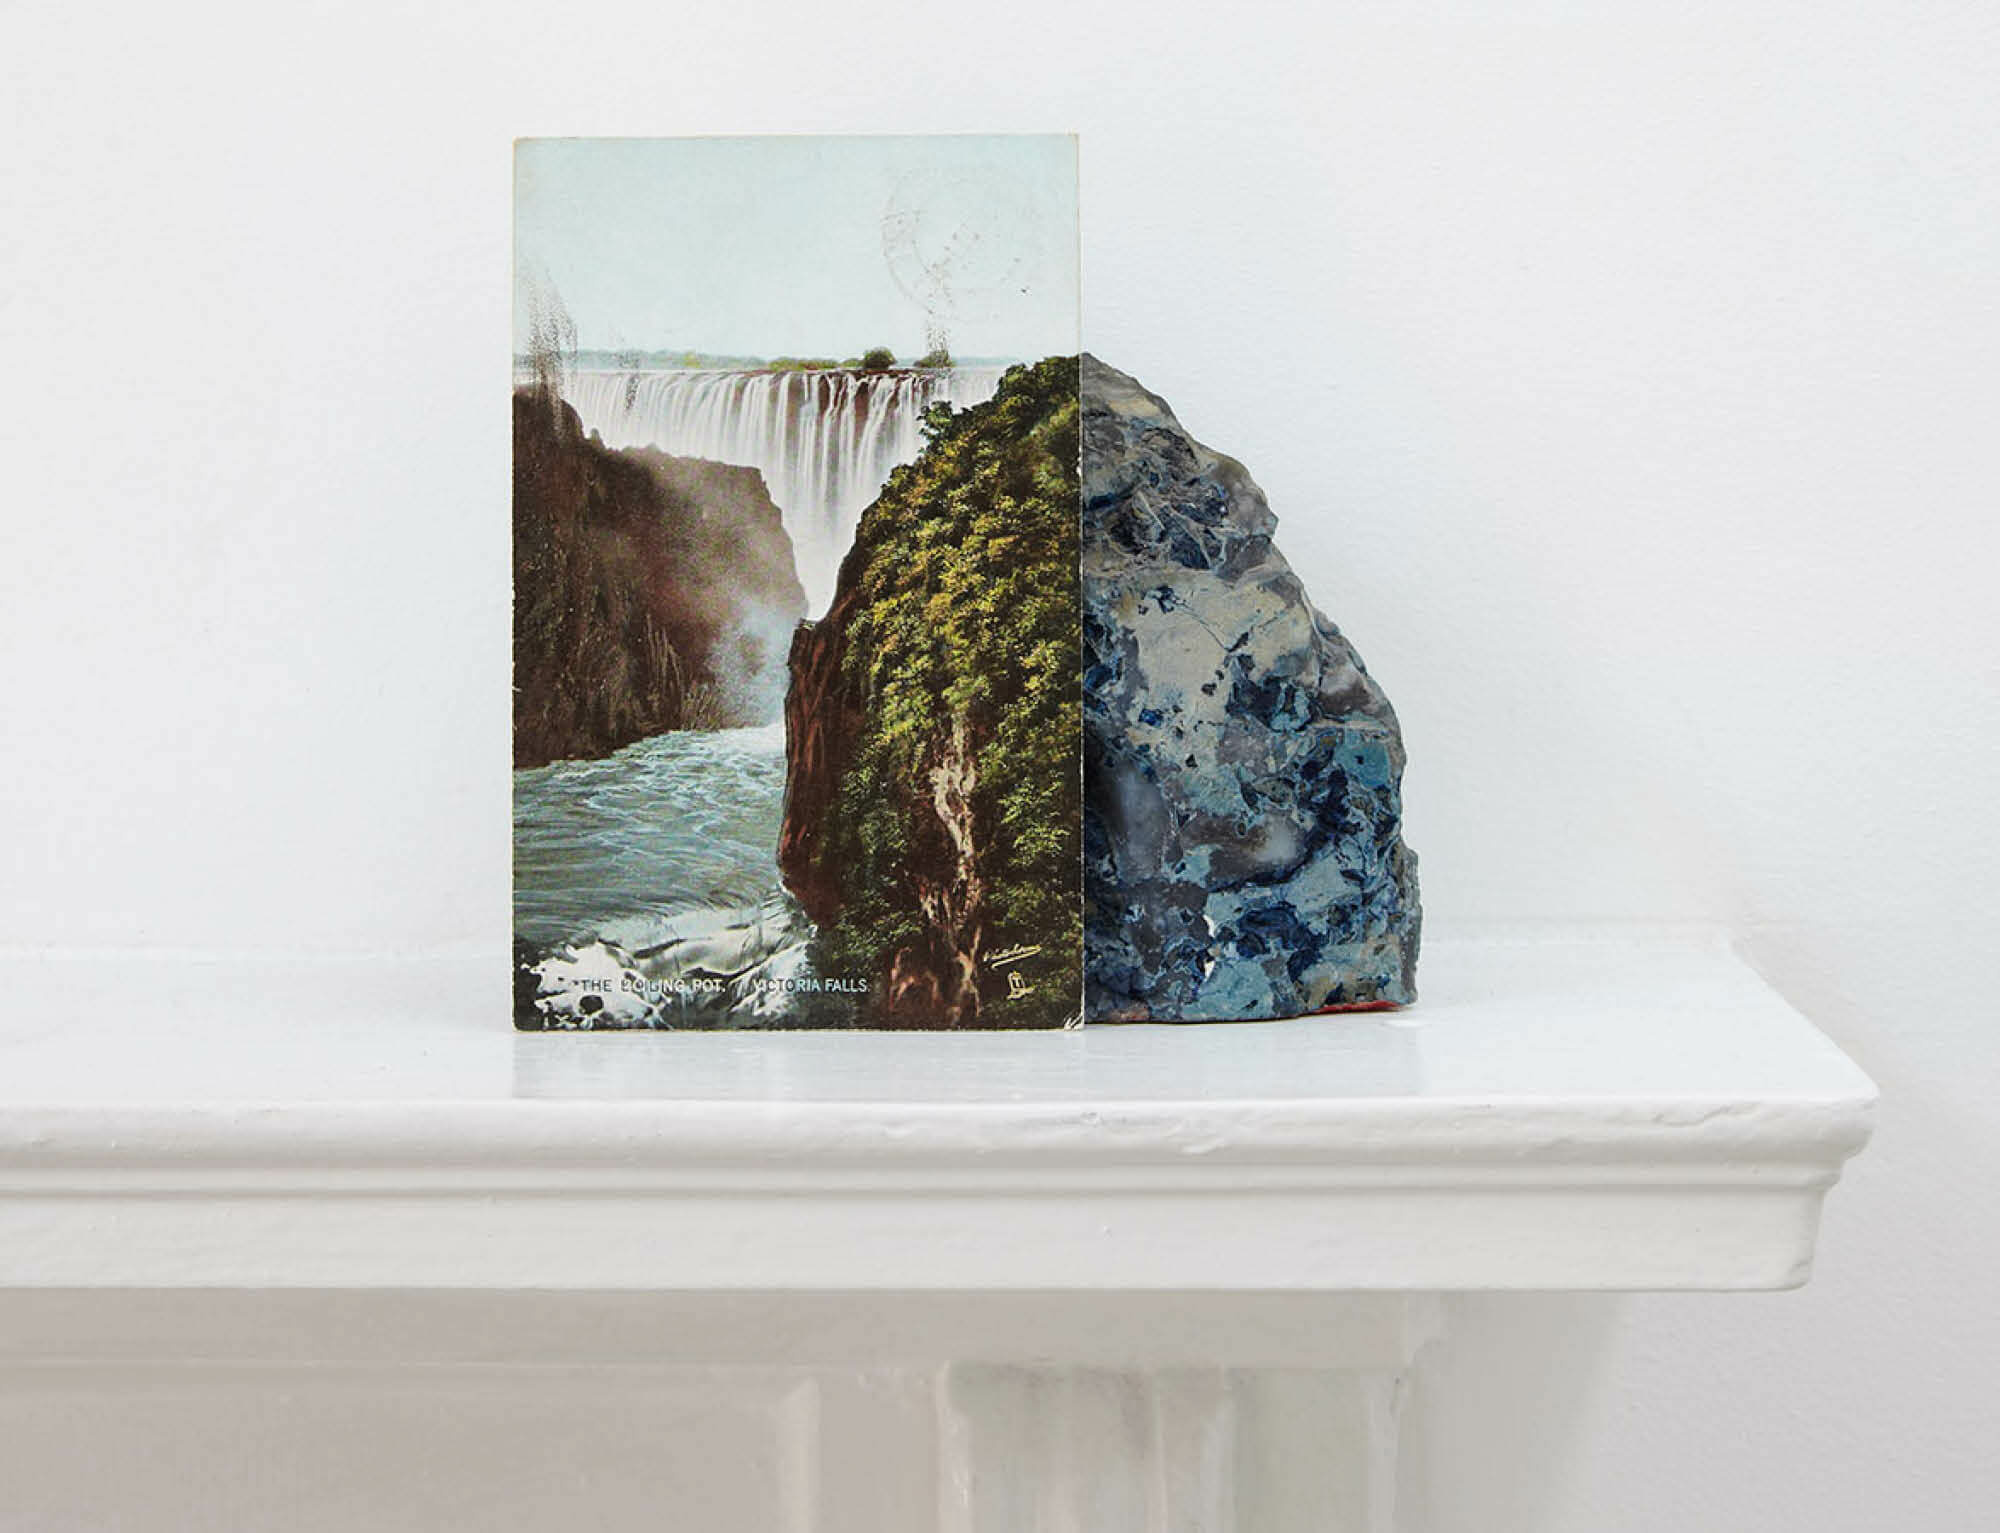 Image: Stuart Whipps, A postcard of Victoria Falls leaning against a geological sample from John Latham's mantlepiece, C-Print, 31.25cm x 25cm, 2013 (John Latham at 100: African Incidentalism 0)